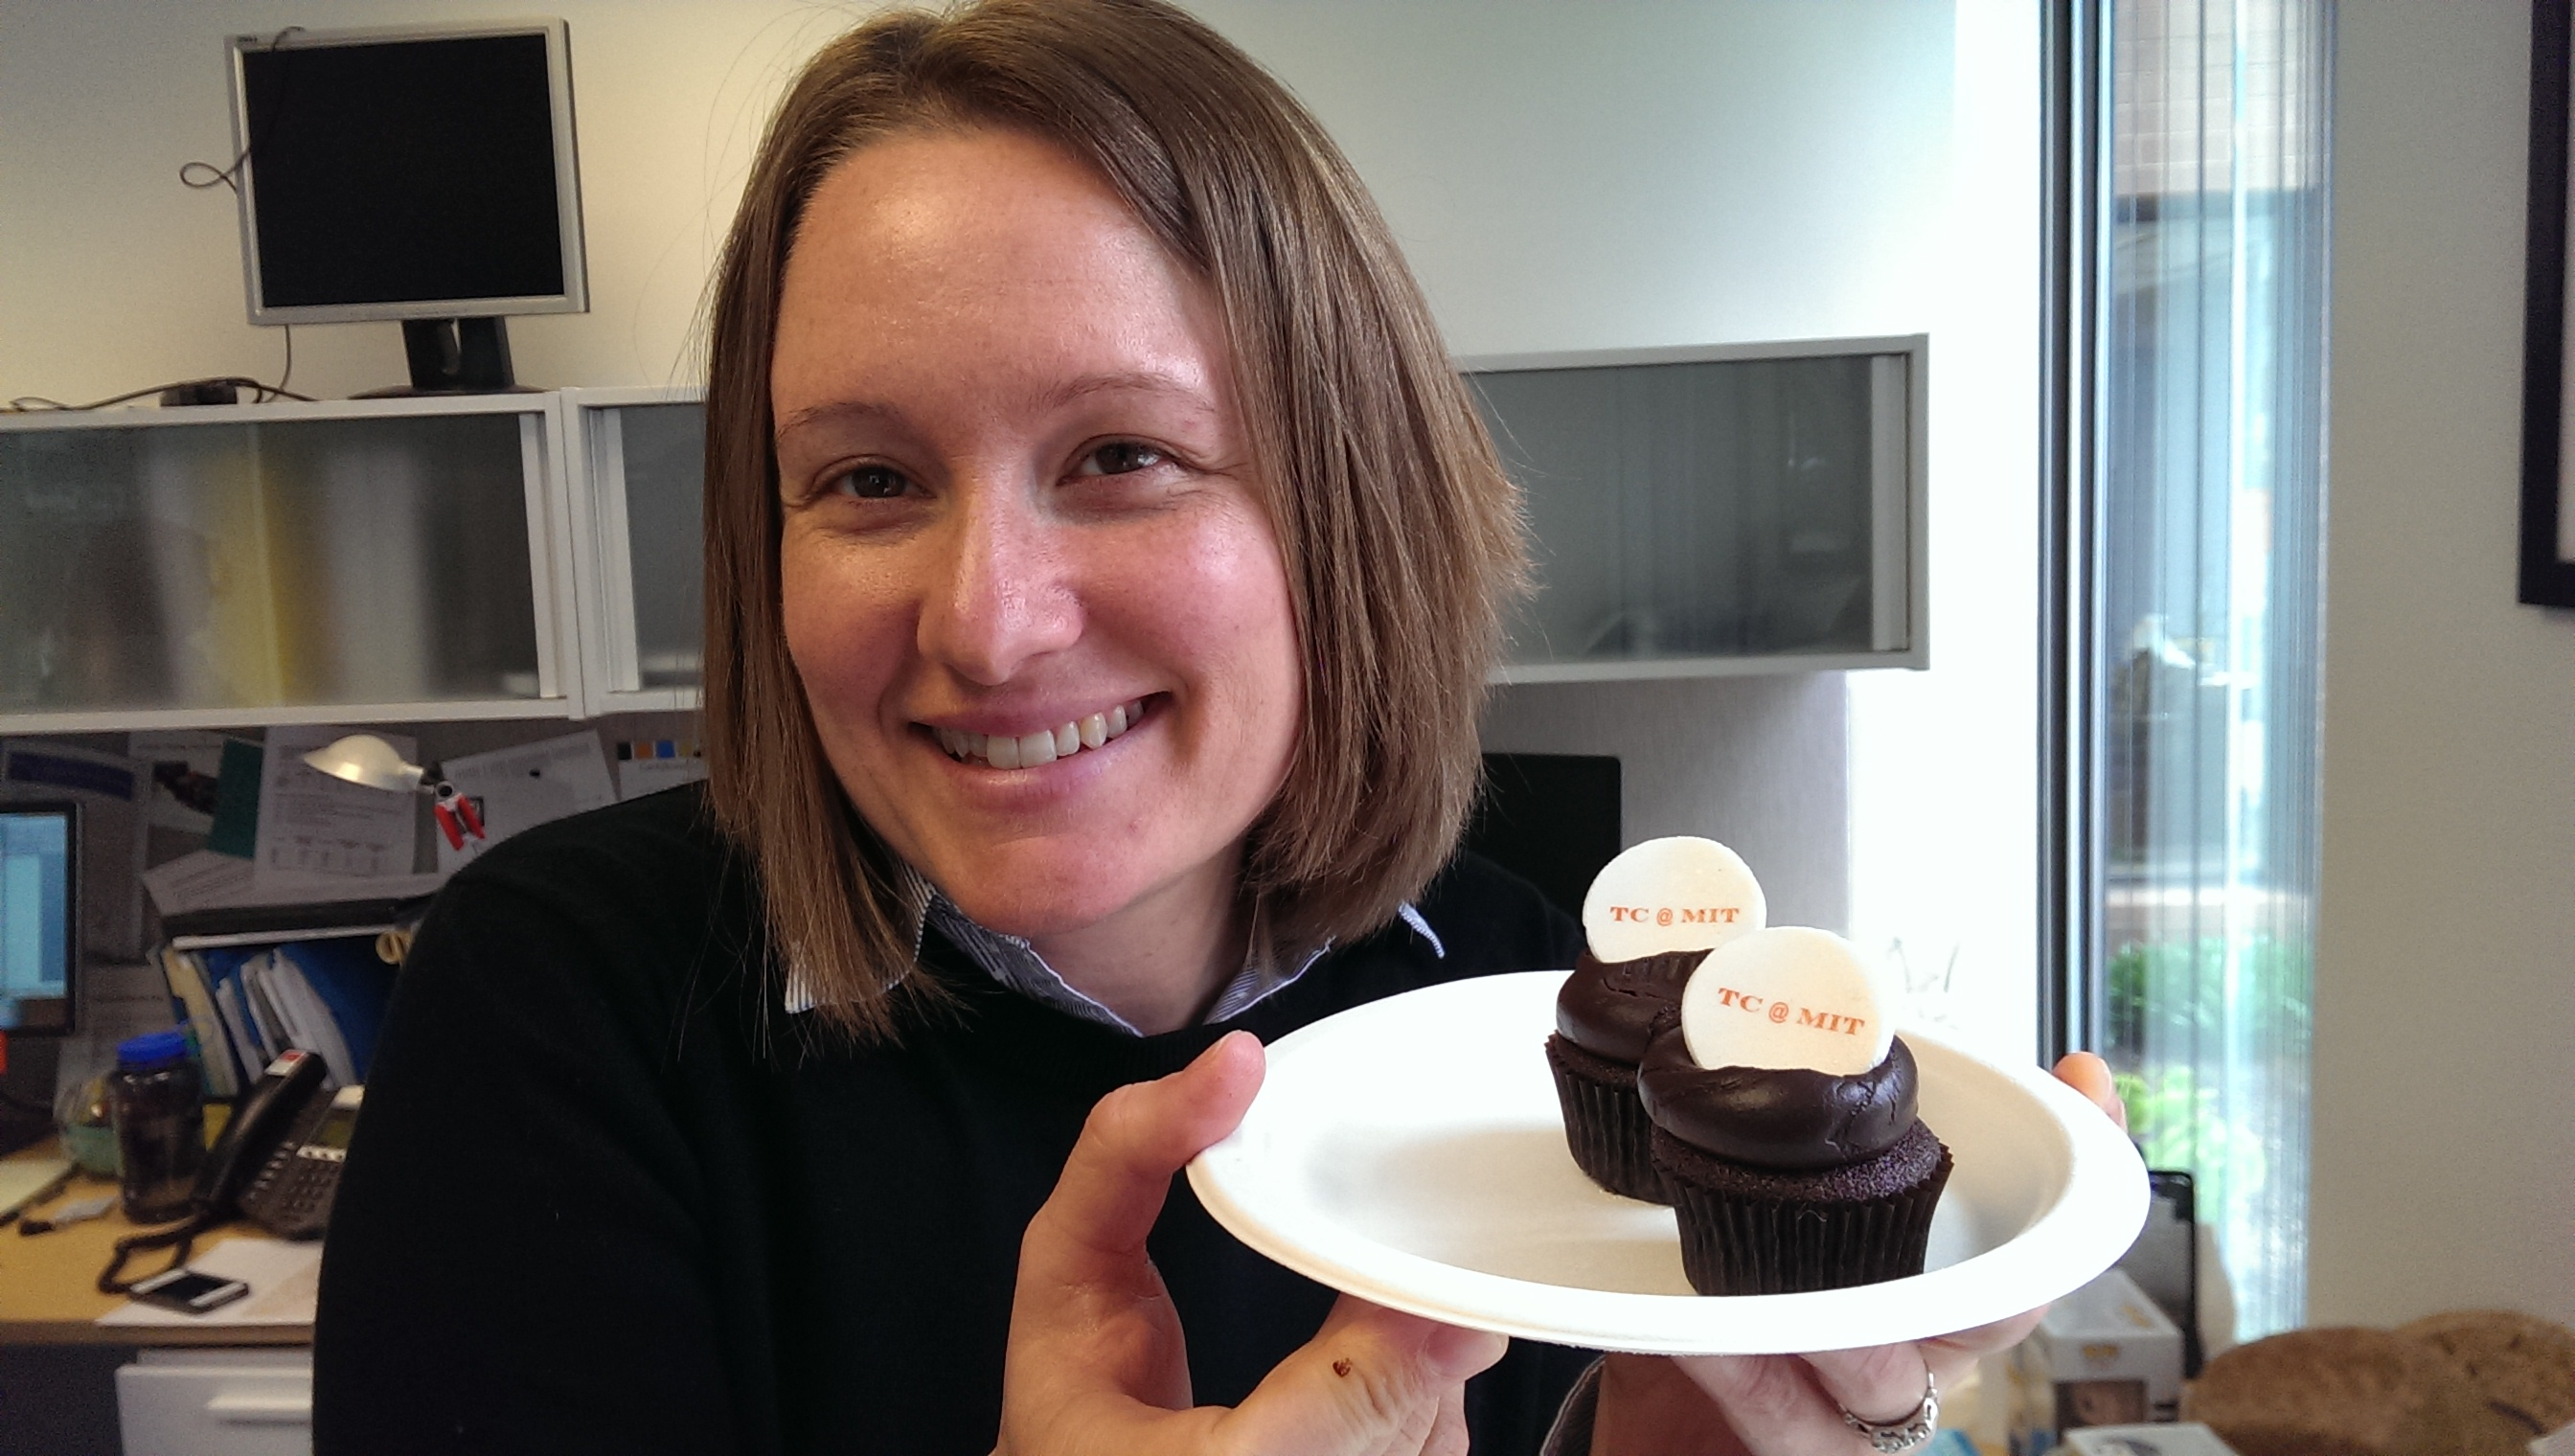 Photo of a smiling woman holding a plate with two cupcakes